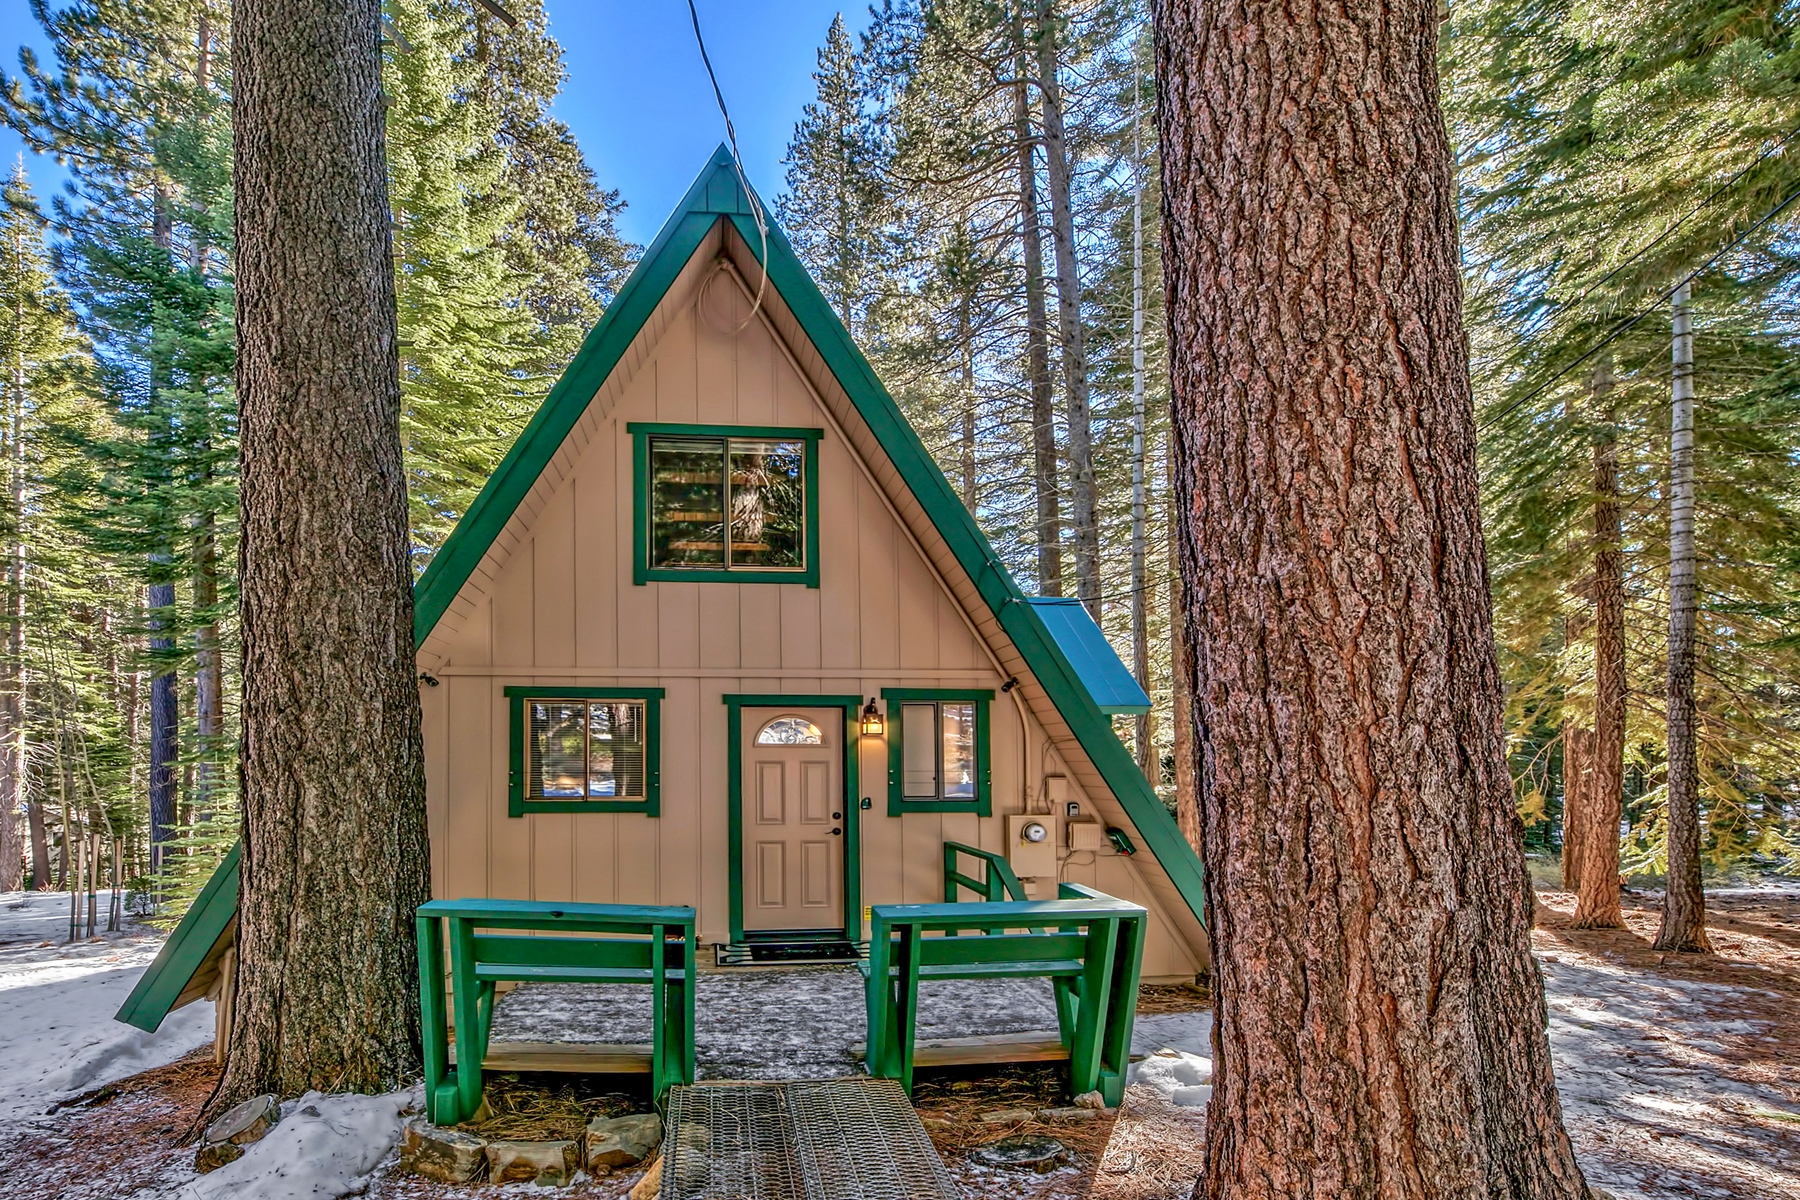 Property for Active at 1889 Normuk St, South Lake Tahoe Ca 96150 1889 Normuk Street South Lake Tahoe, California 96150 United States